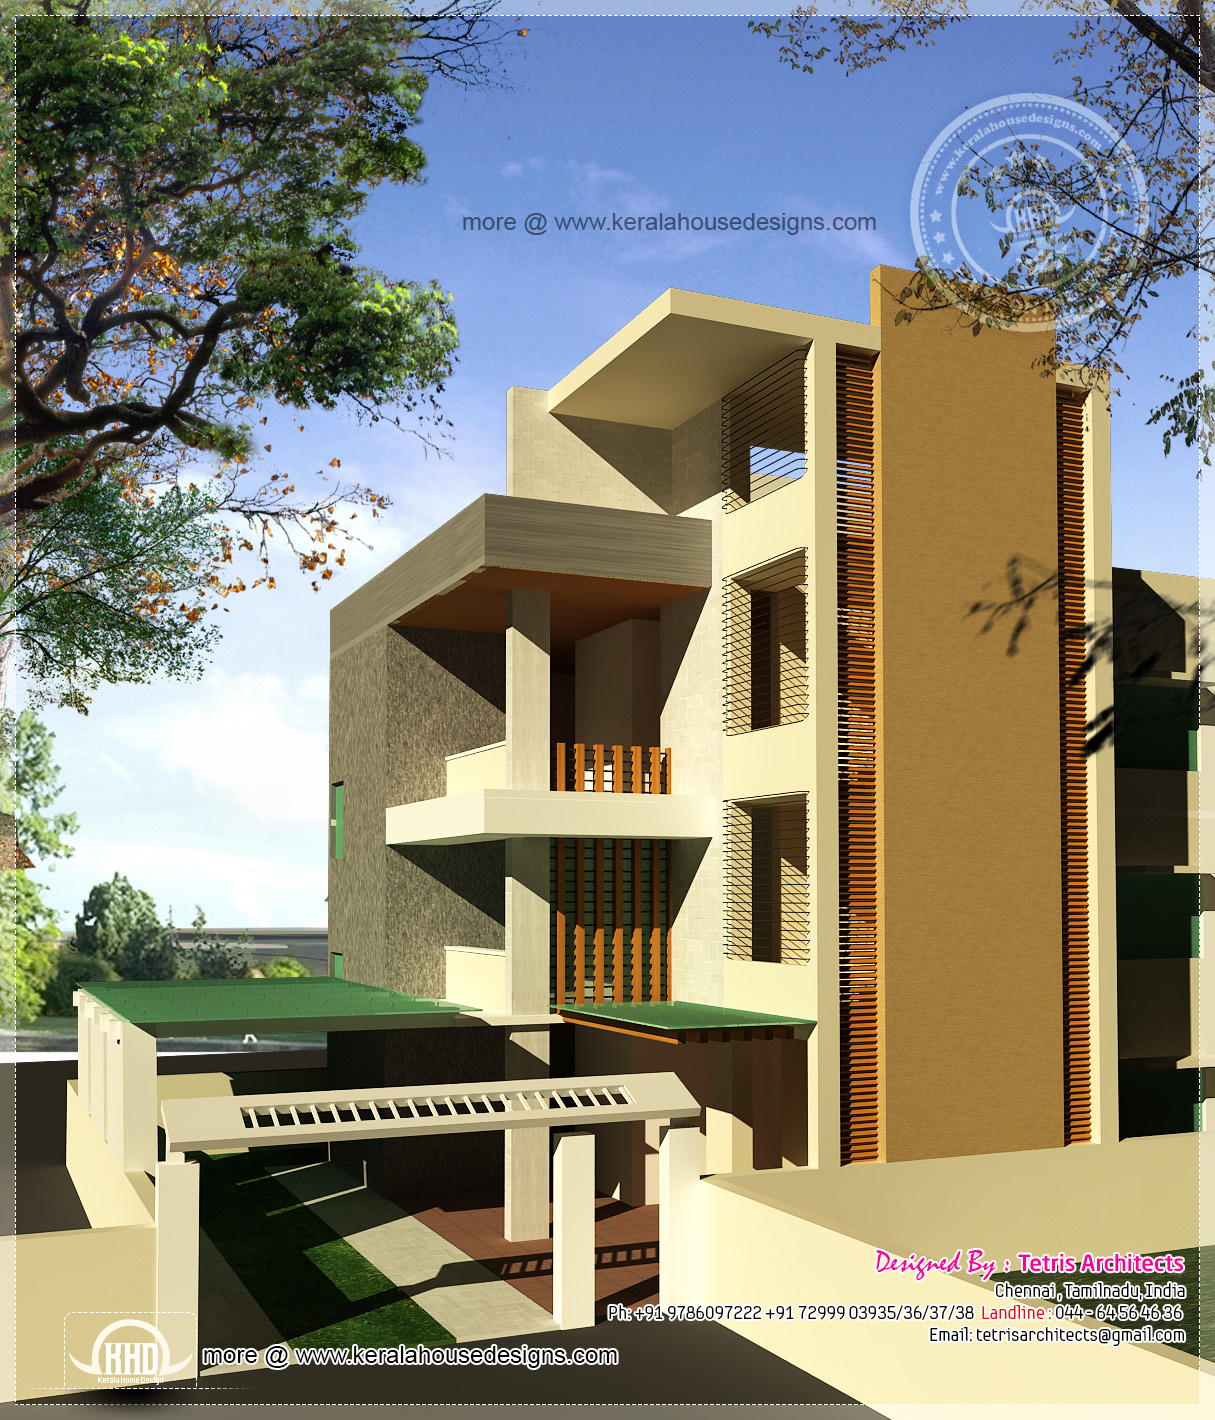 861 square yards designed by tetris architects chennai tamilnadu india